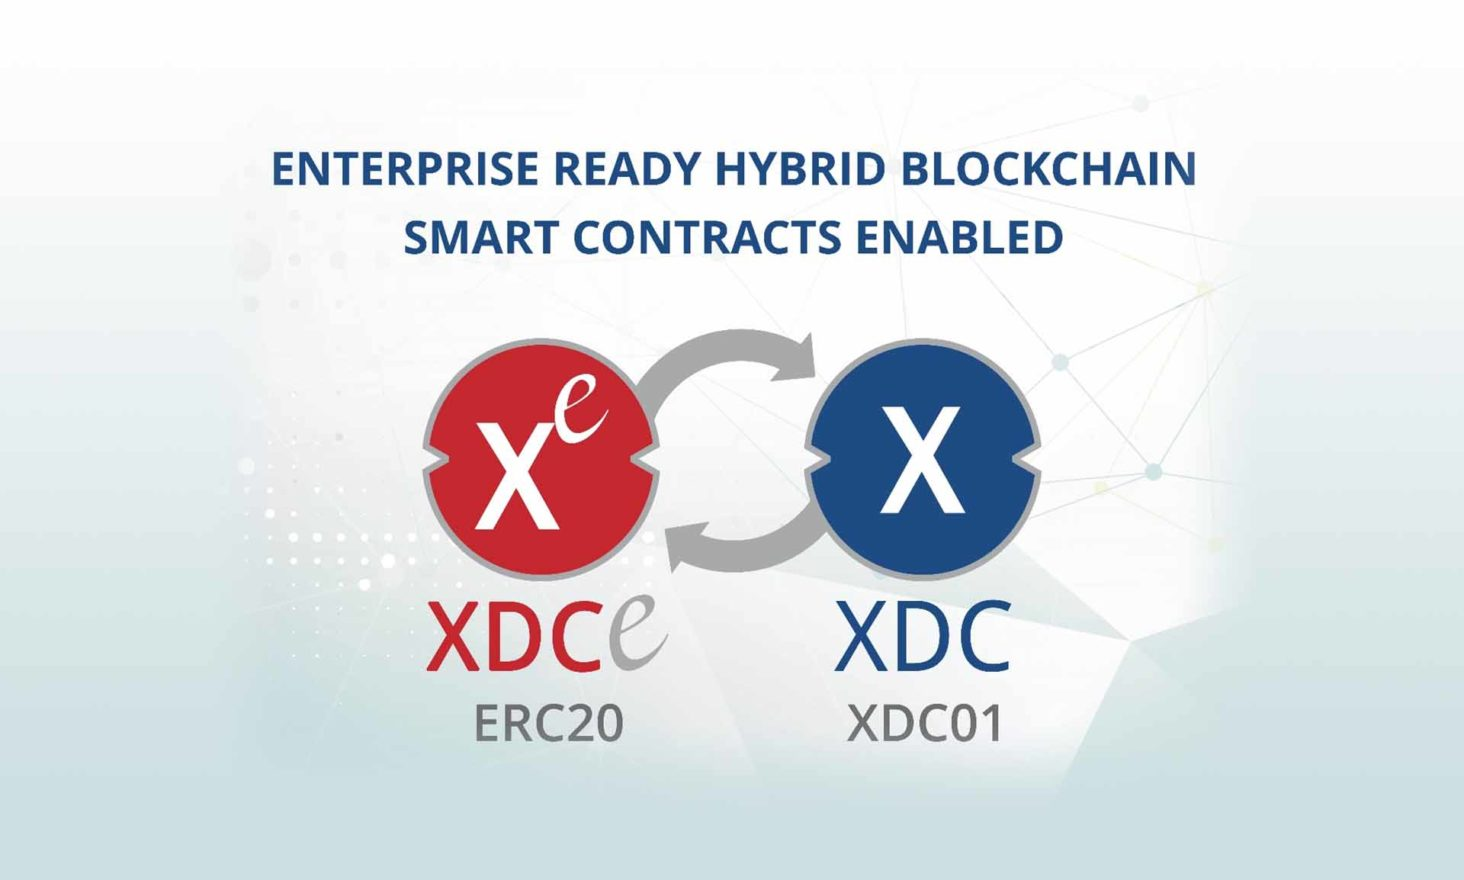 XDCE Token Goes Live on Exchanges like Bancor, KoinOK, Alphaex, Forkdelta & Etherflyer Opens 20% Above the Token Contribution Price